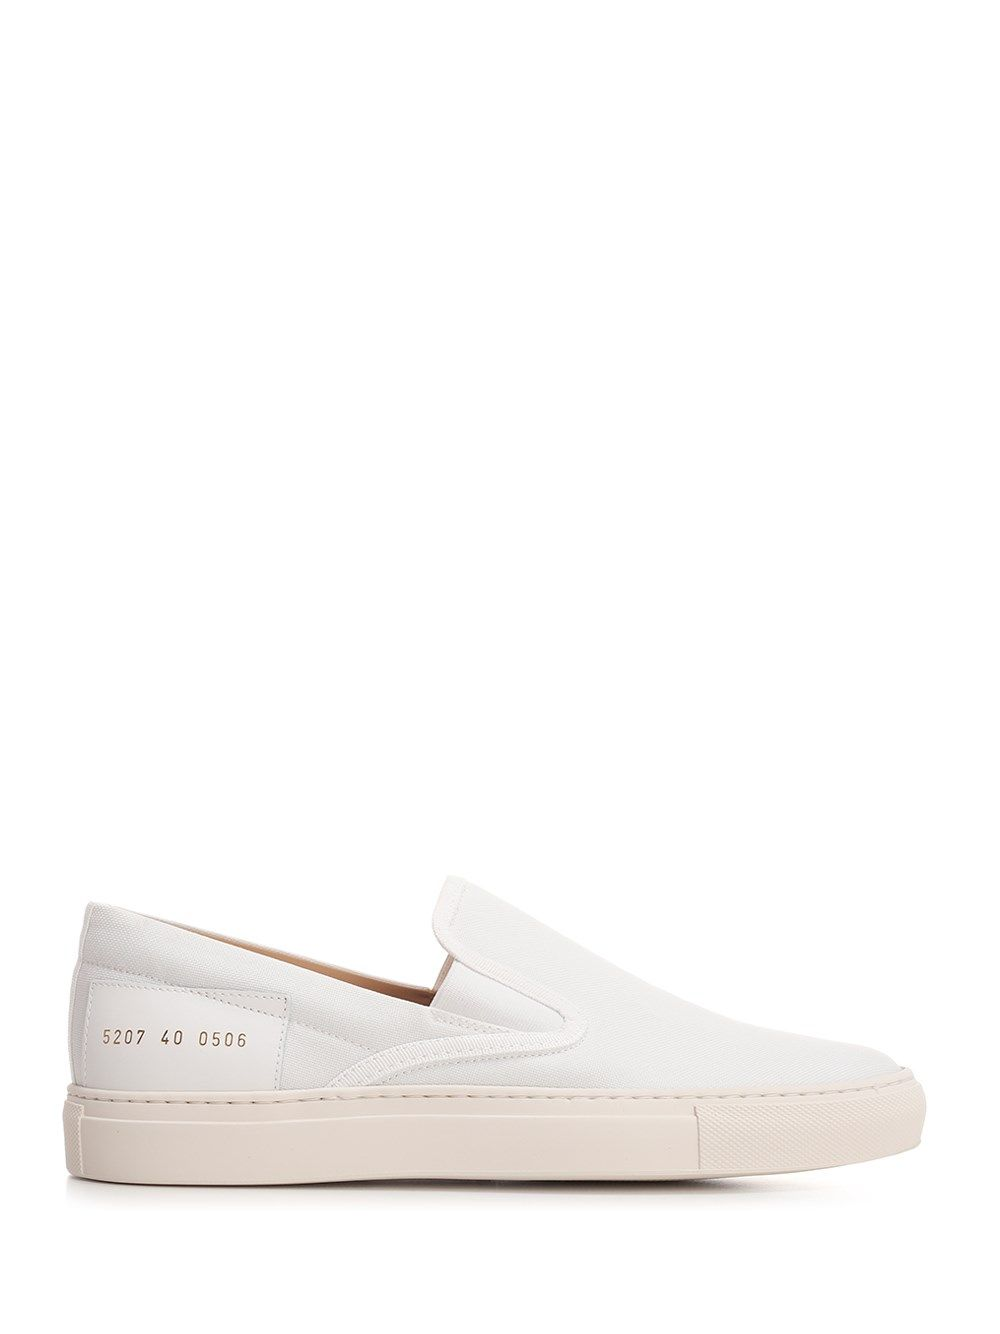 Common Projects Sneakers COMMON PROJECTS MEN'S 52070506 WHITE OTHER MATERIALS SNEAKERS